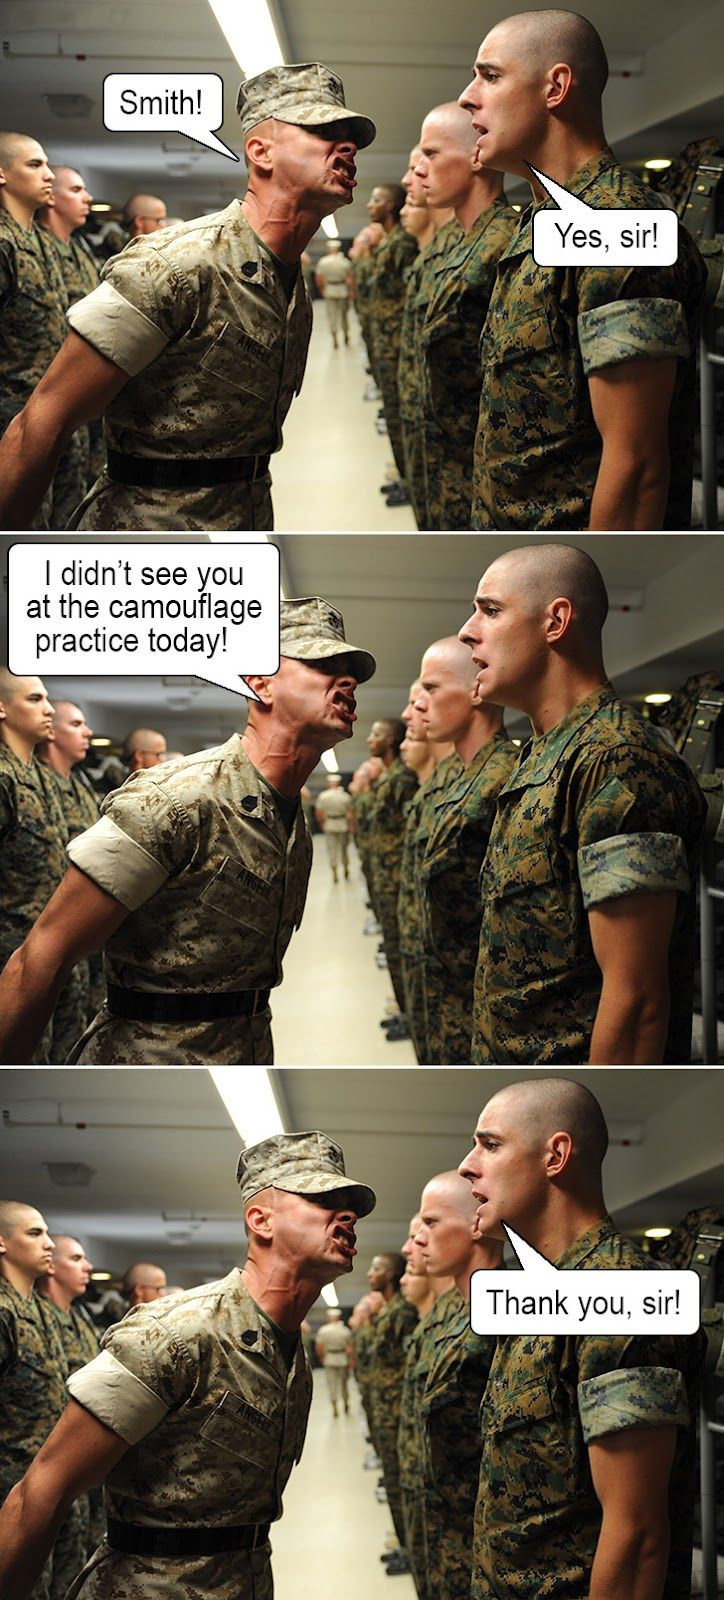 WHY couldn't I come up with funny stuff like this as my drill sergeant was screaming in my face! lol